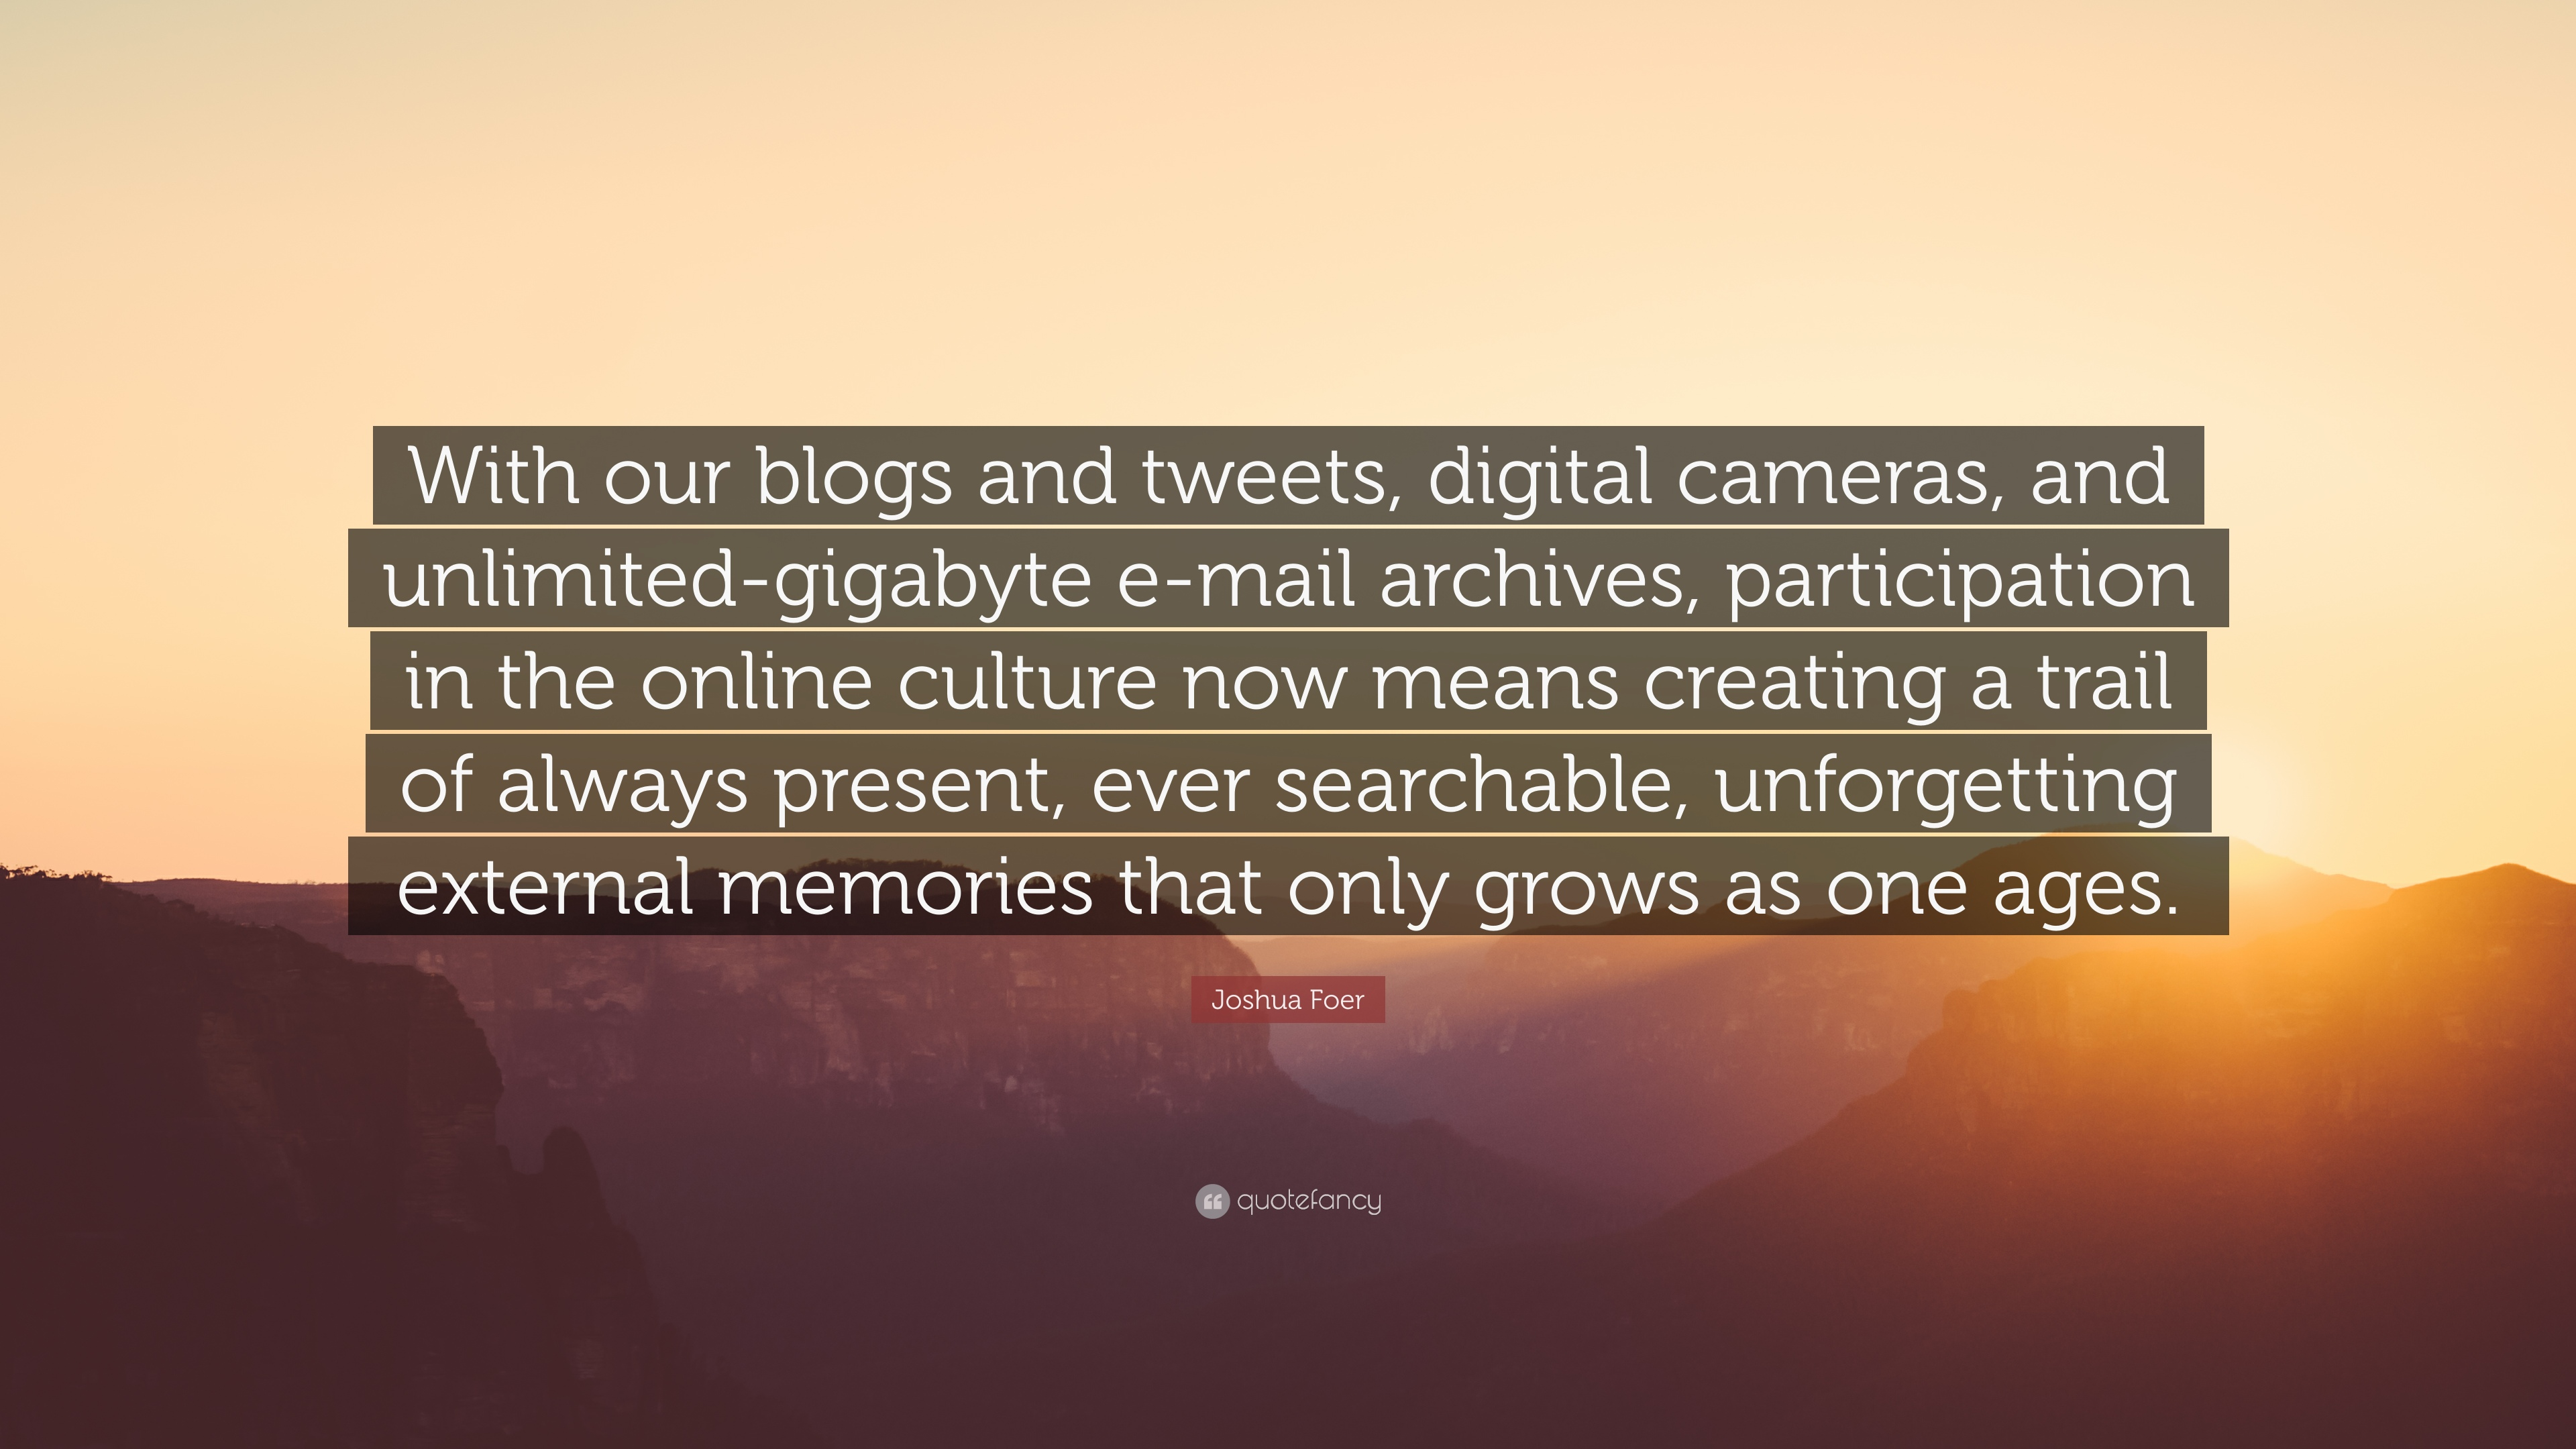 Charmant Joshua Foer Quote: U201cWith Our Blogs And Tweets, Digital Cameras, And  Unlimited